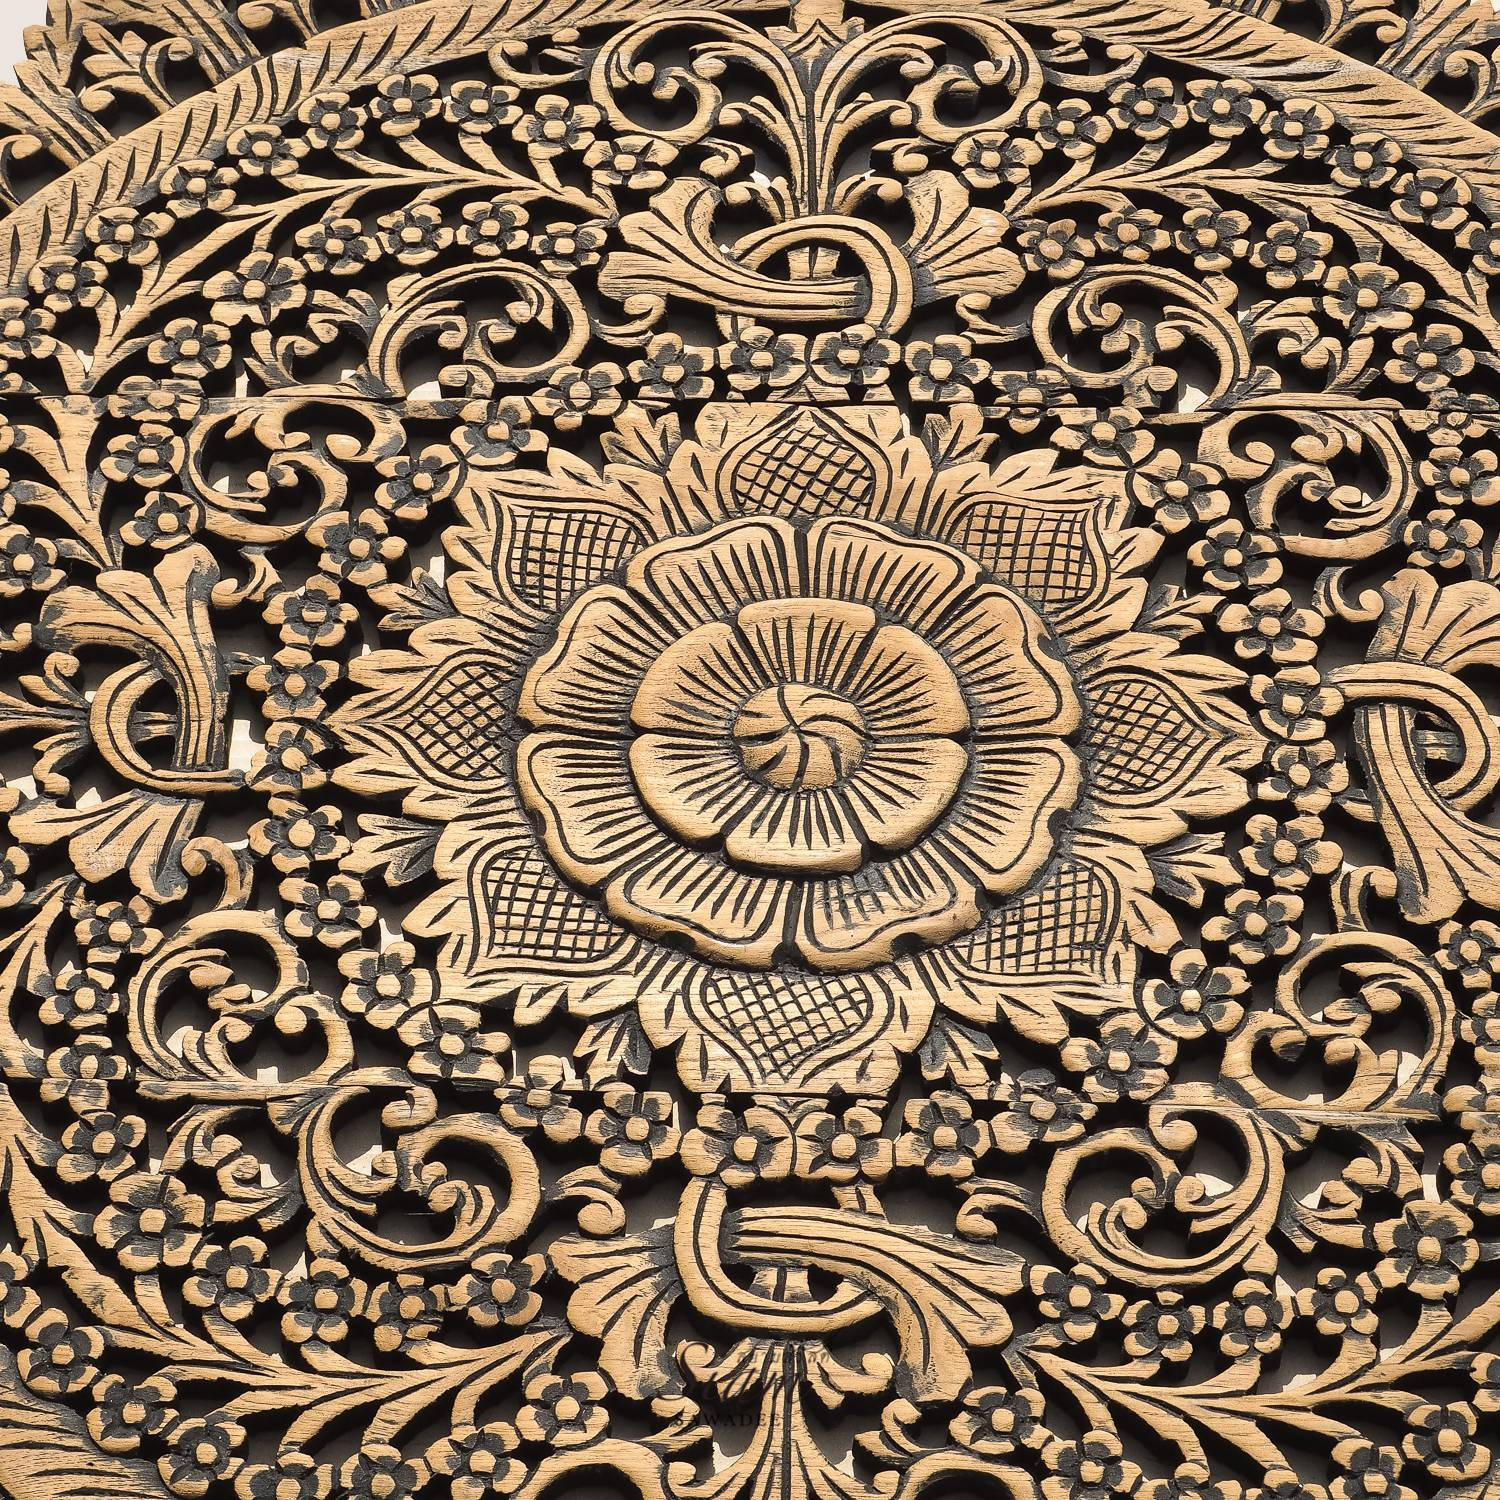 Rustic Carved Wall Art Panel Asian Home Decor – Siam Sawadee Regarding Newest Wood Carved Wall Art Panels (Gallery 25 of 25)